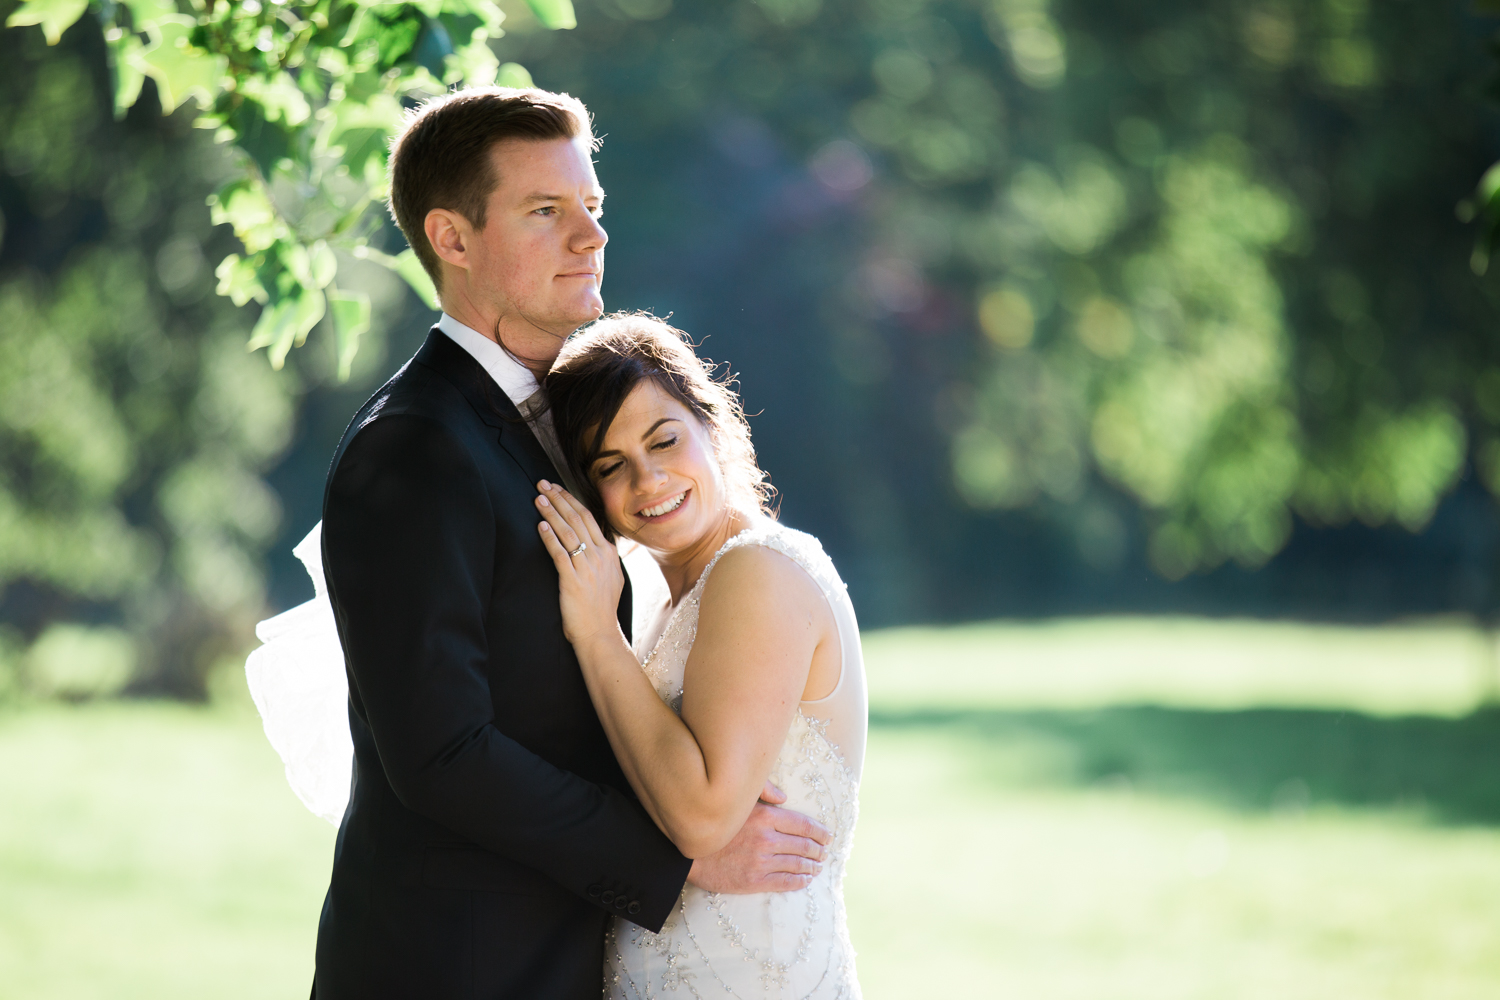 UK Fine Art Wedding Photographer at Iscoyd Park photo